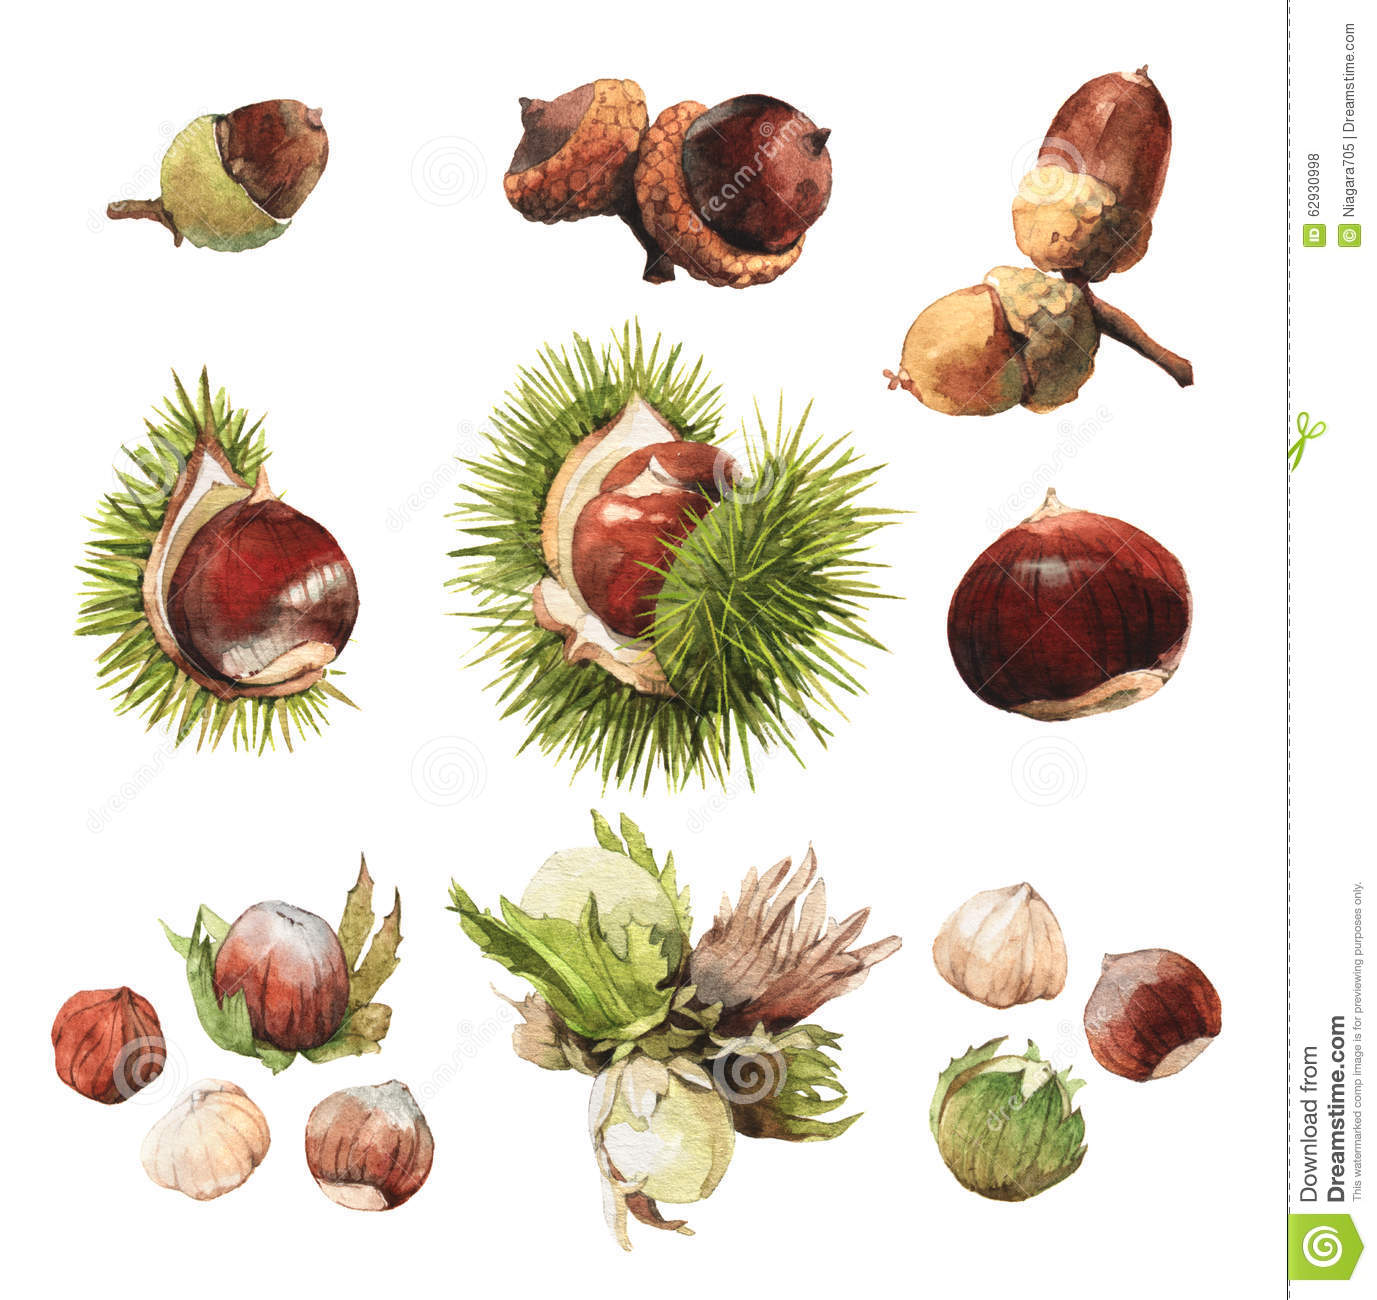 watercolour clip art illustrations of true nuts stock